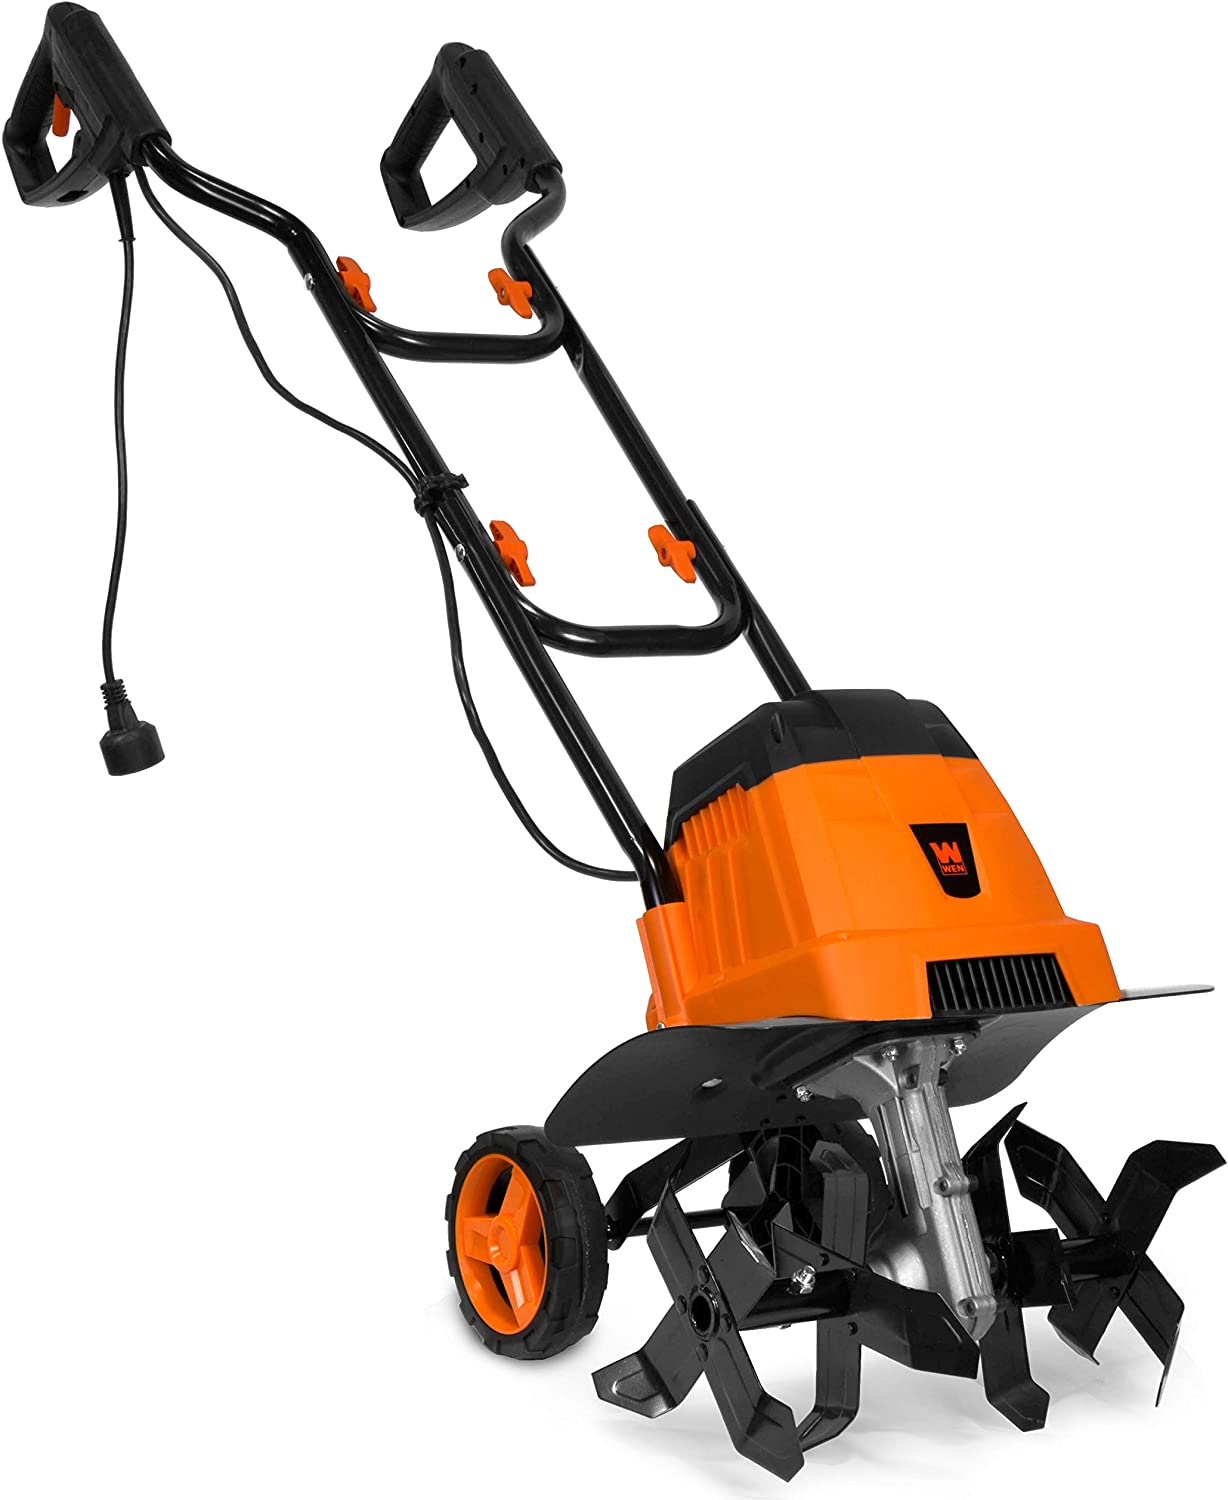 WEN TC0714 7-Amp 14.2-Inch wholesale Electric and Tiller Black Sacramento Mall Cultivator